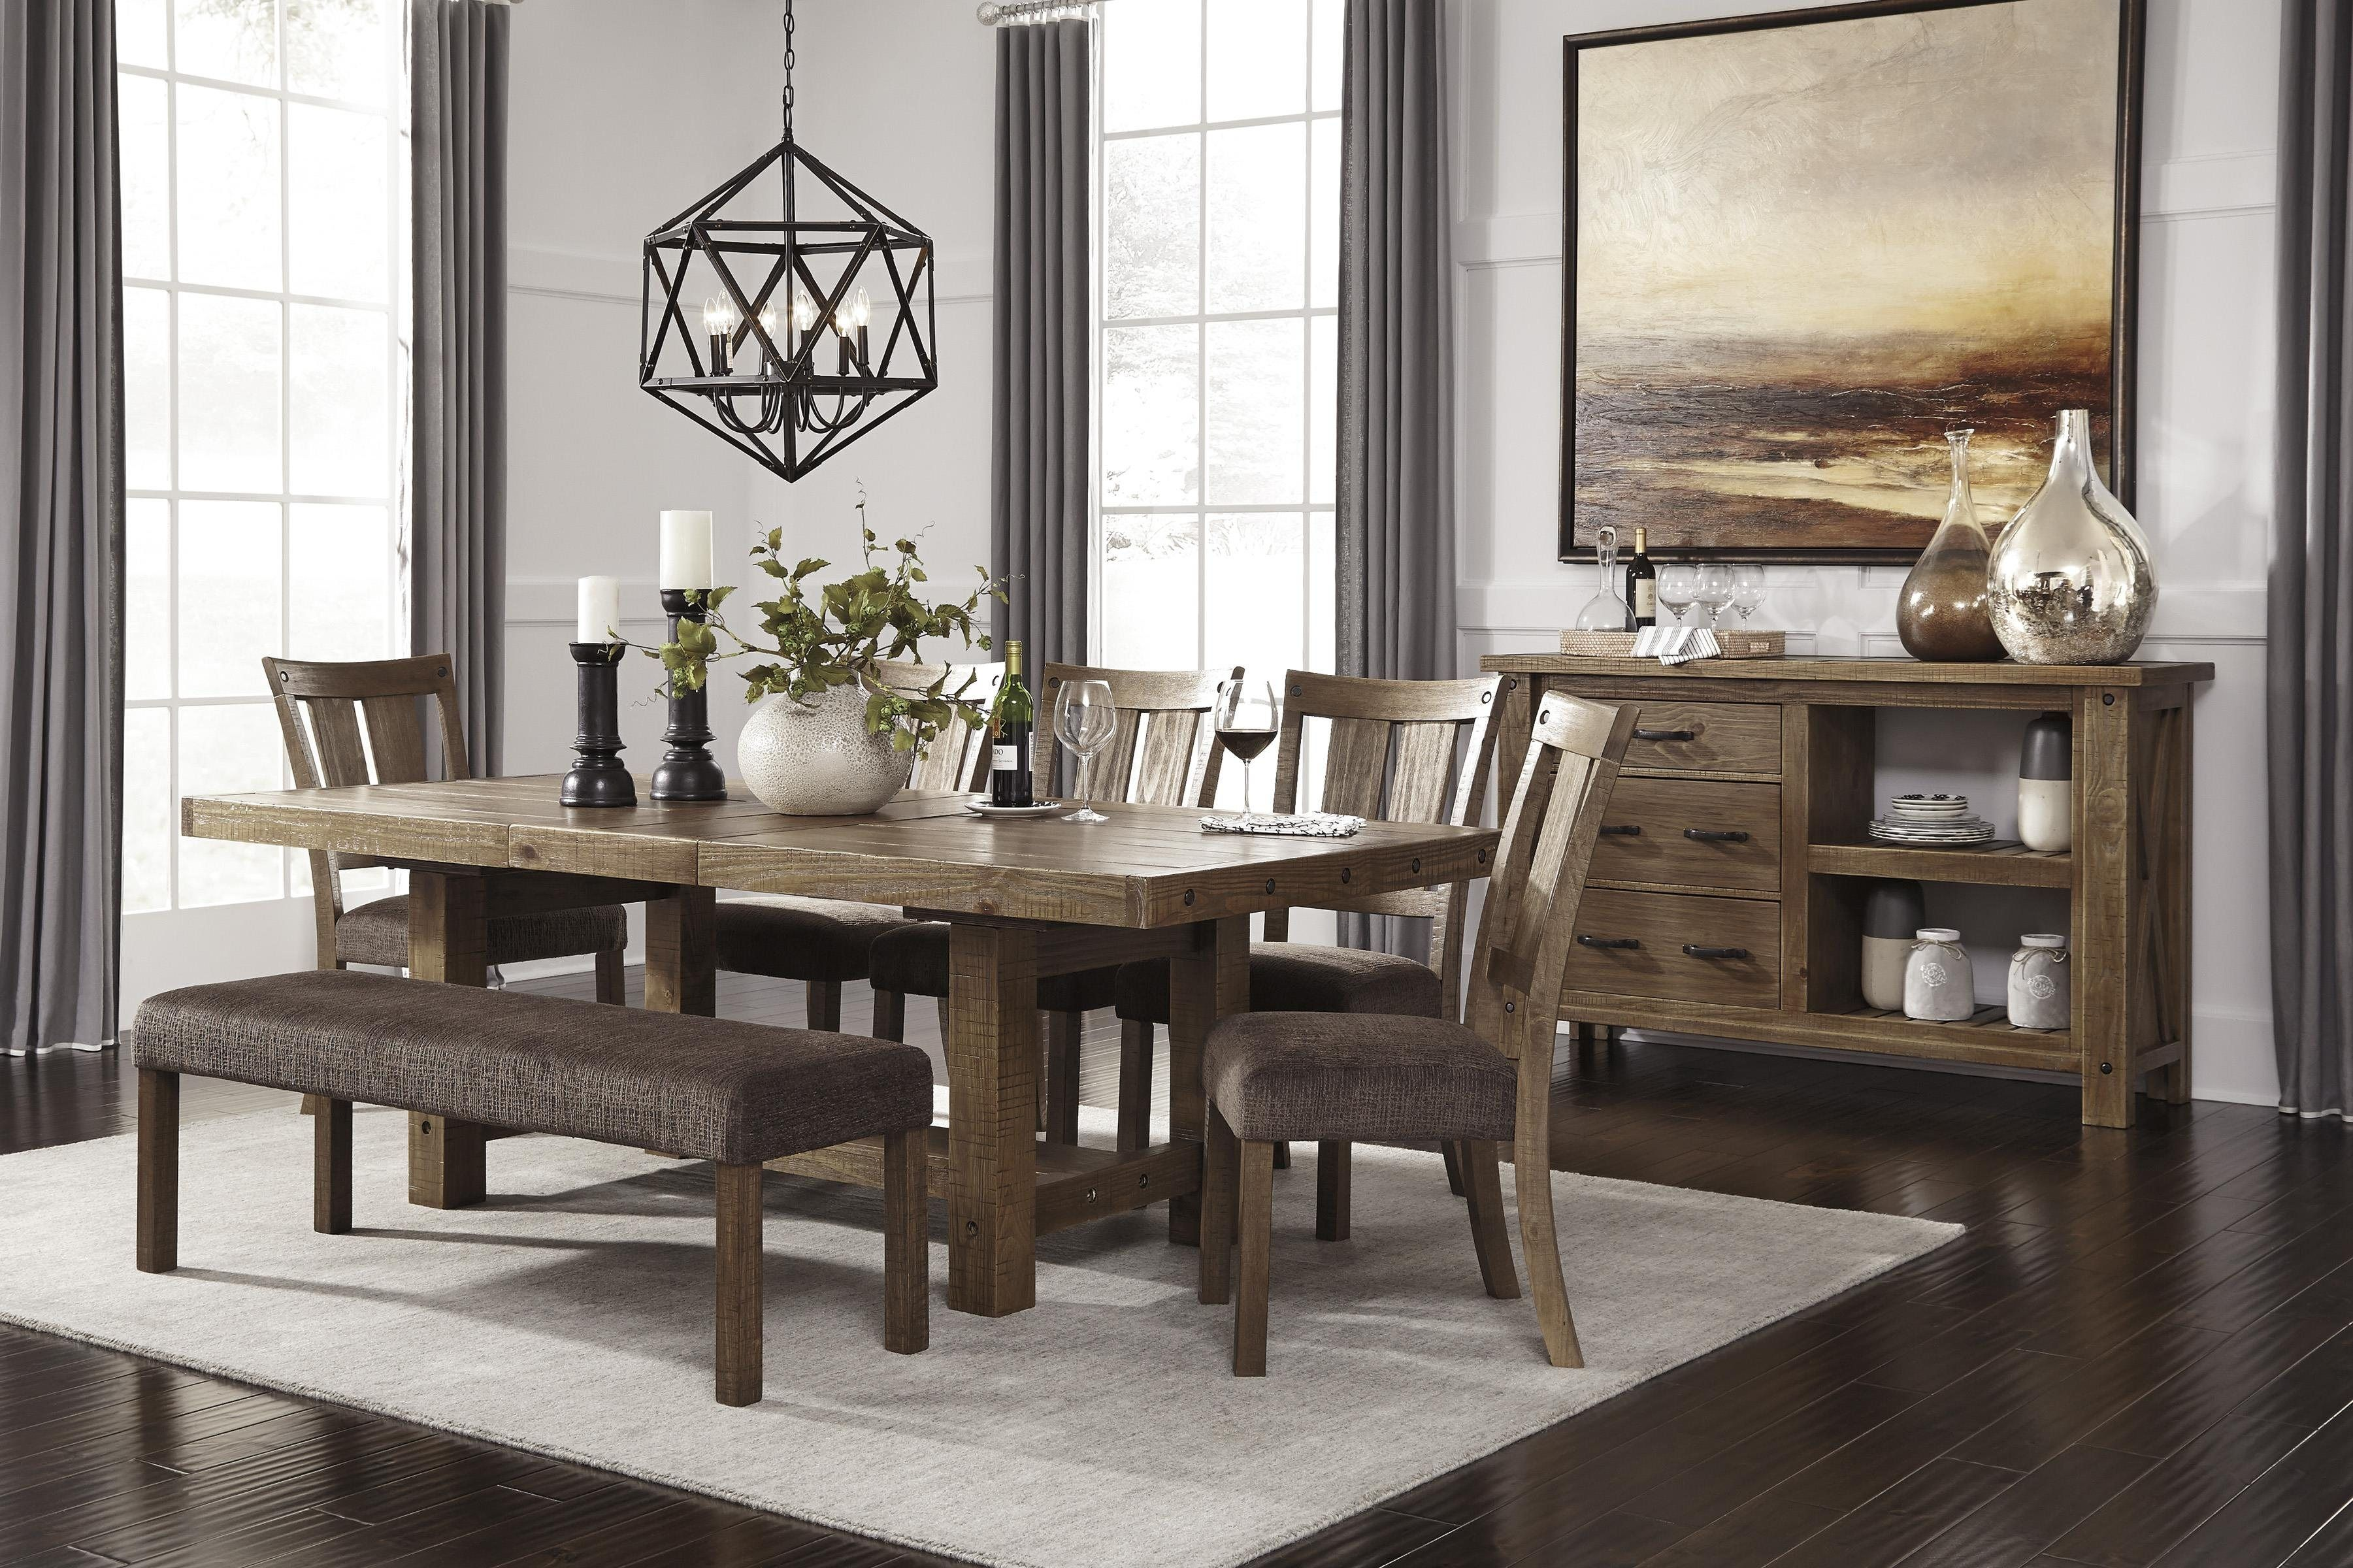 Interesting dining room table with upholstered bench